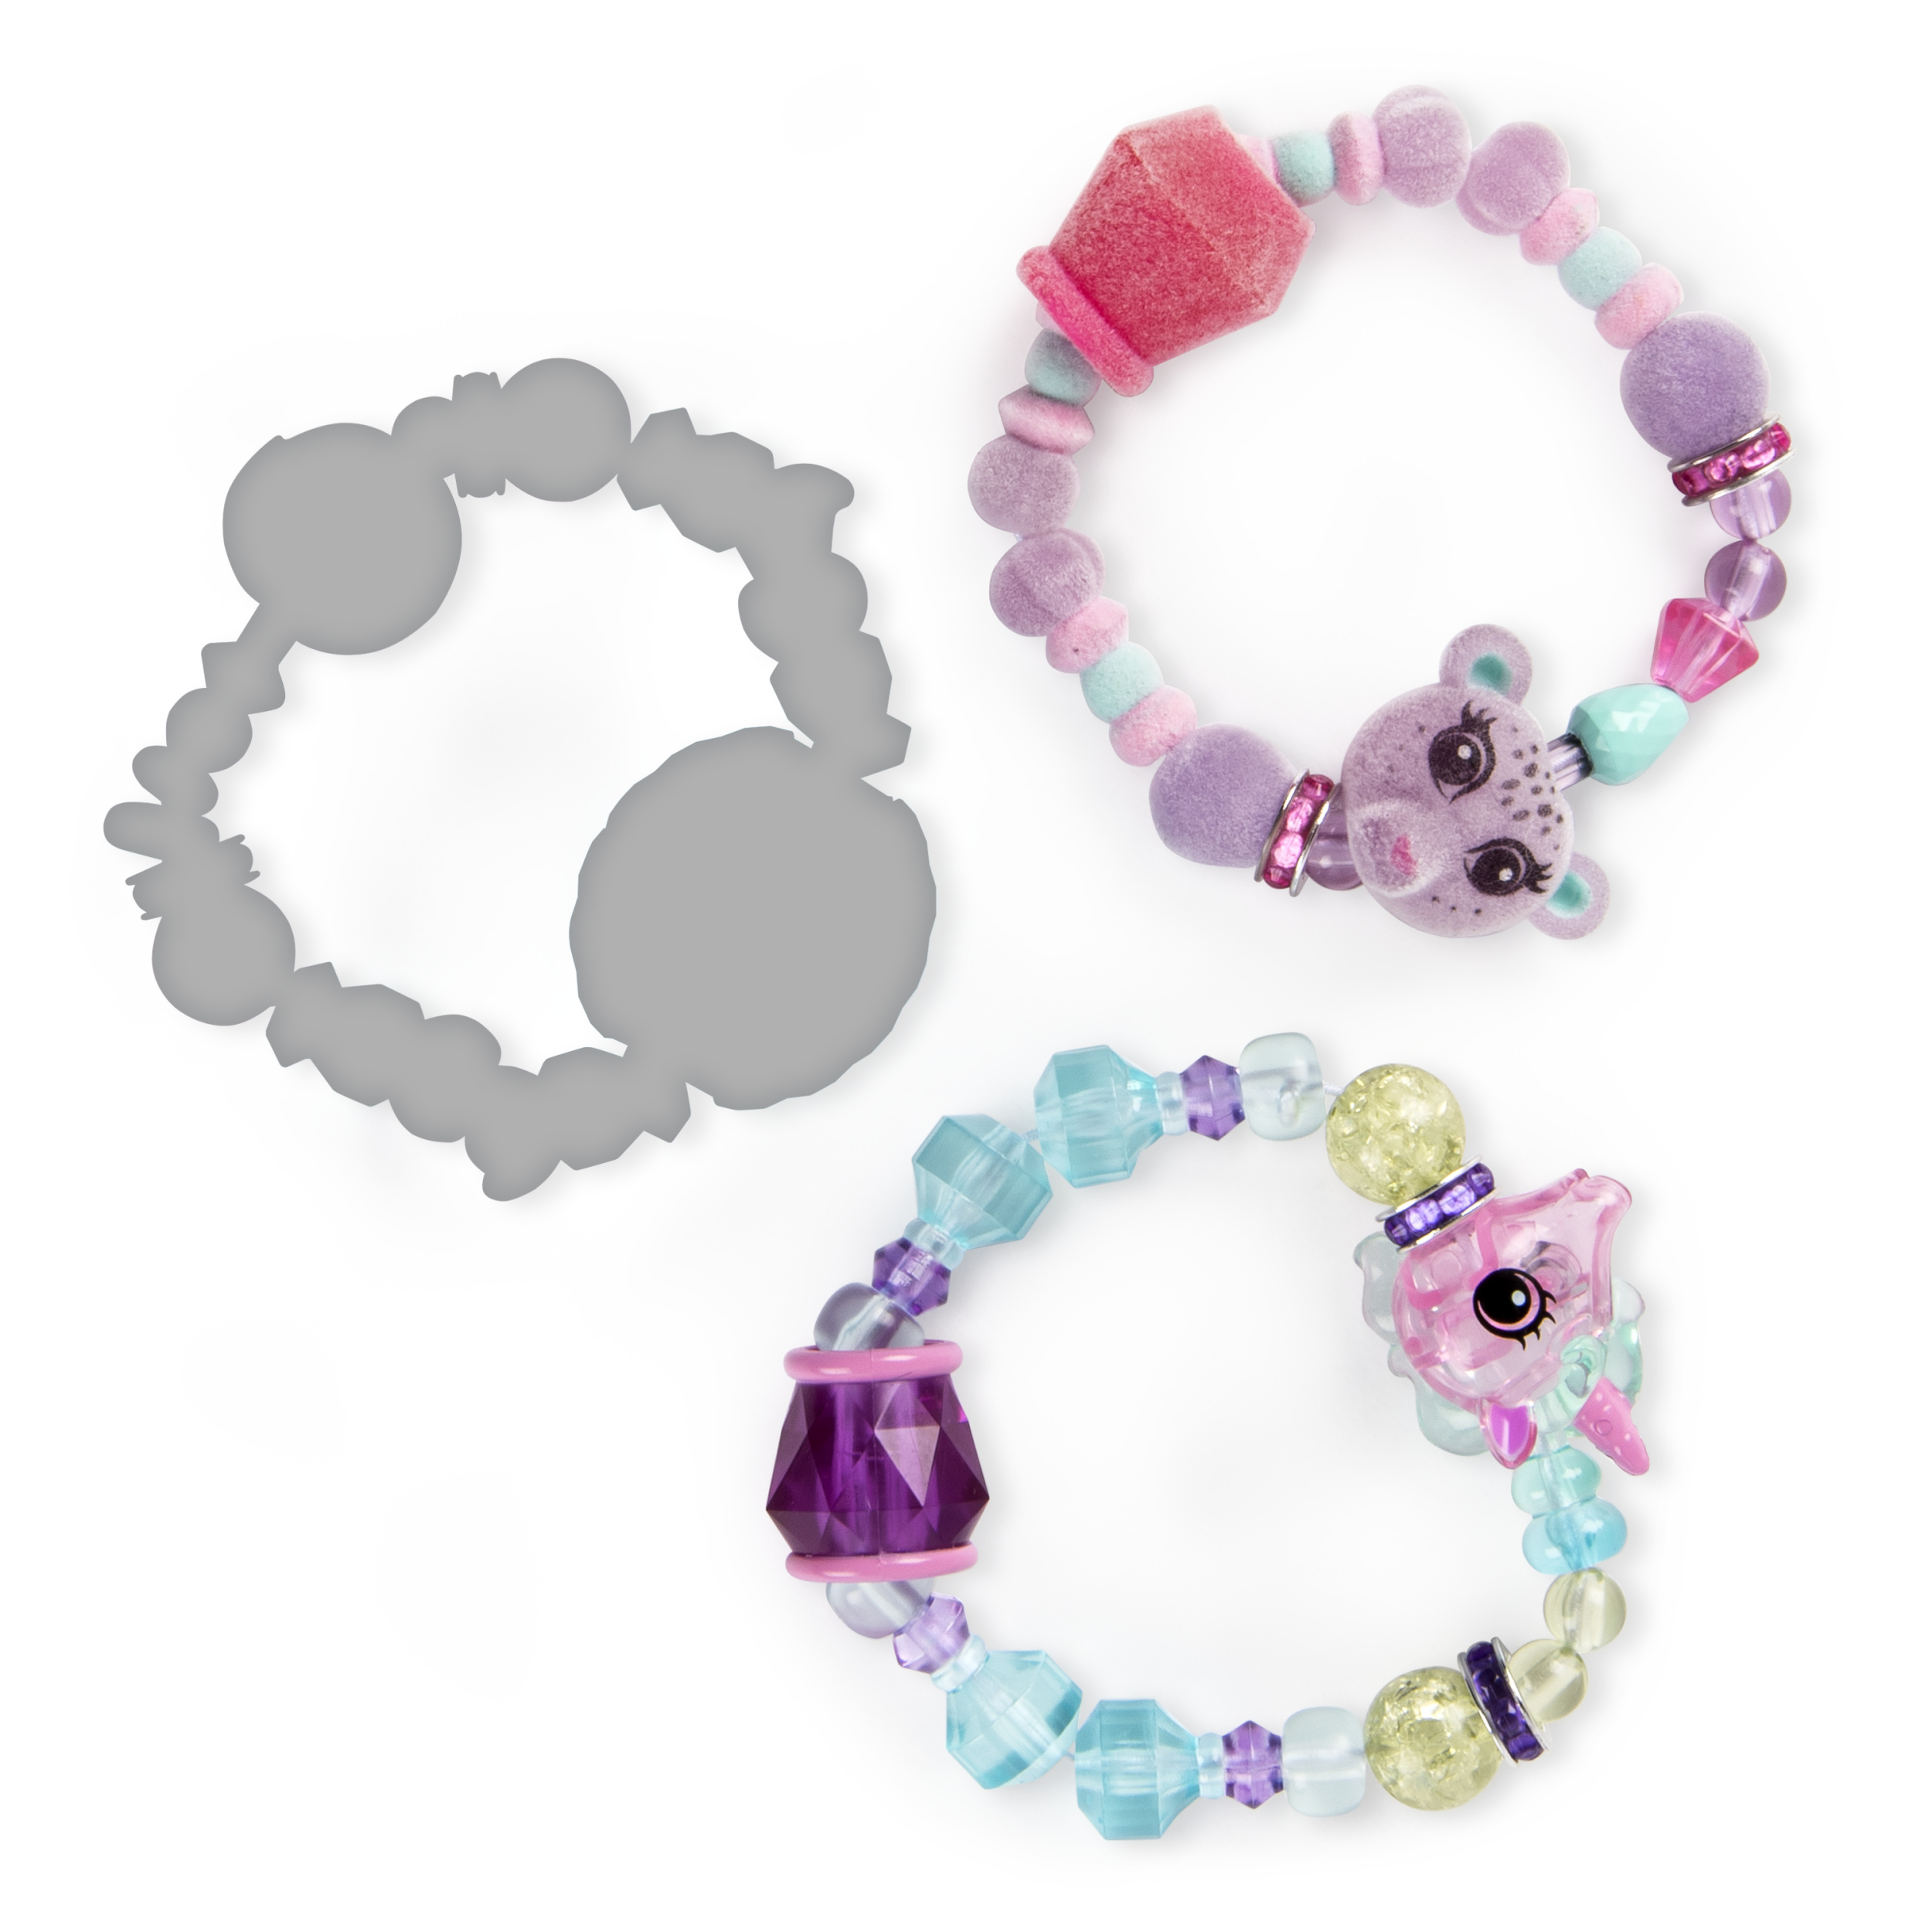 3 Twisty petz Butterscotch Unicorn Berry Tales Cheetah /& Surprise bracelets